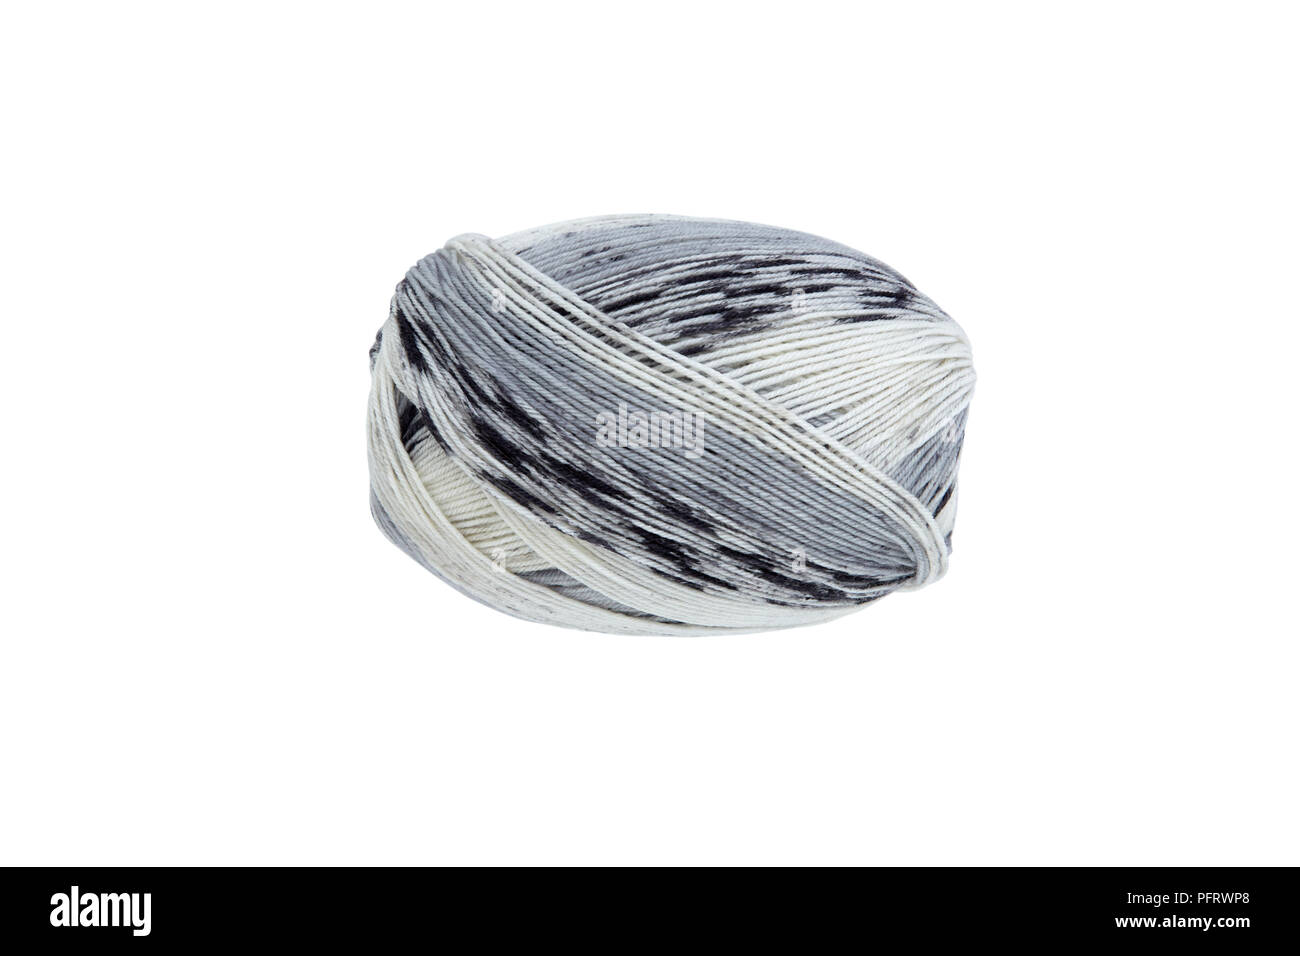 Ball of grey and white wool - Stock Image